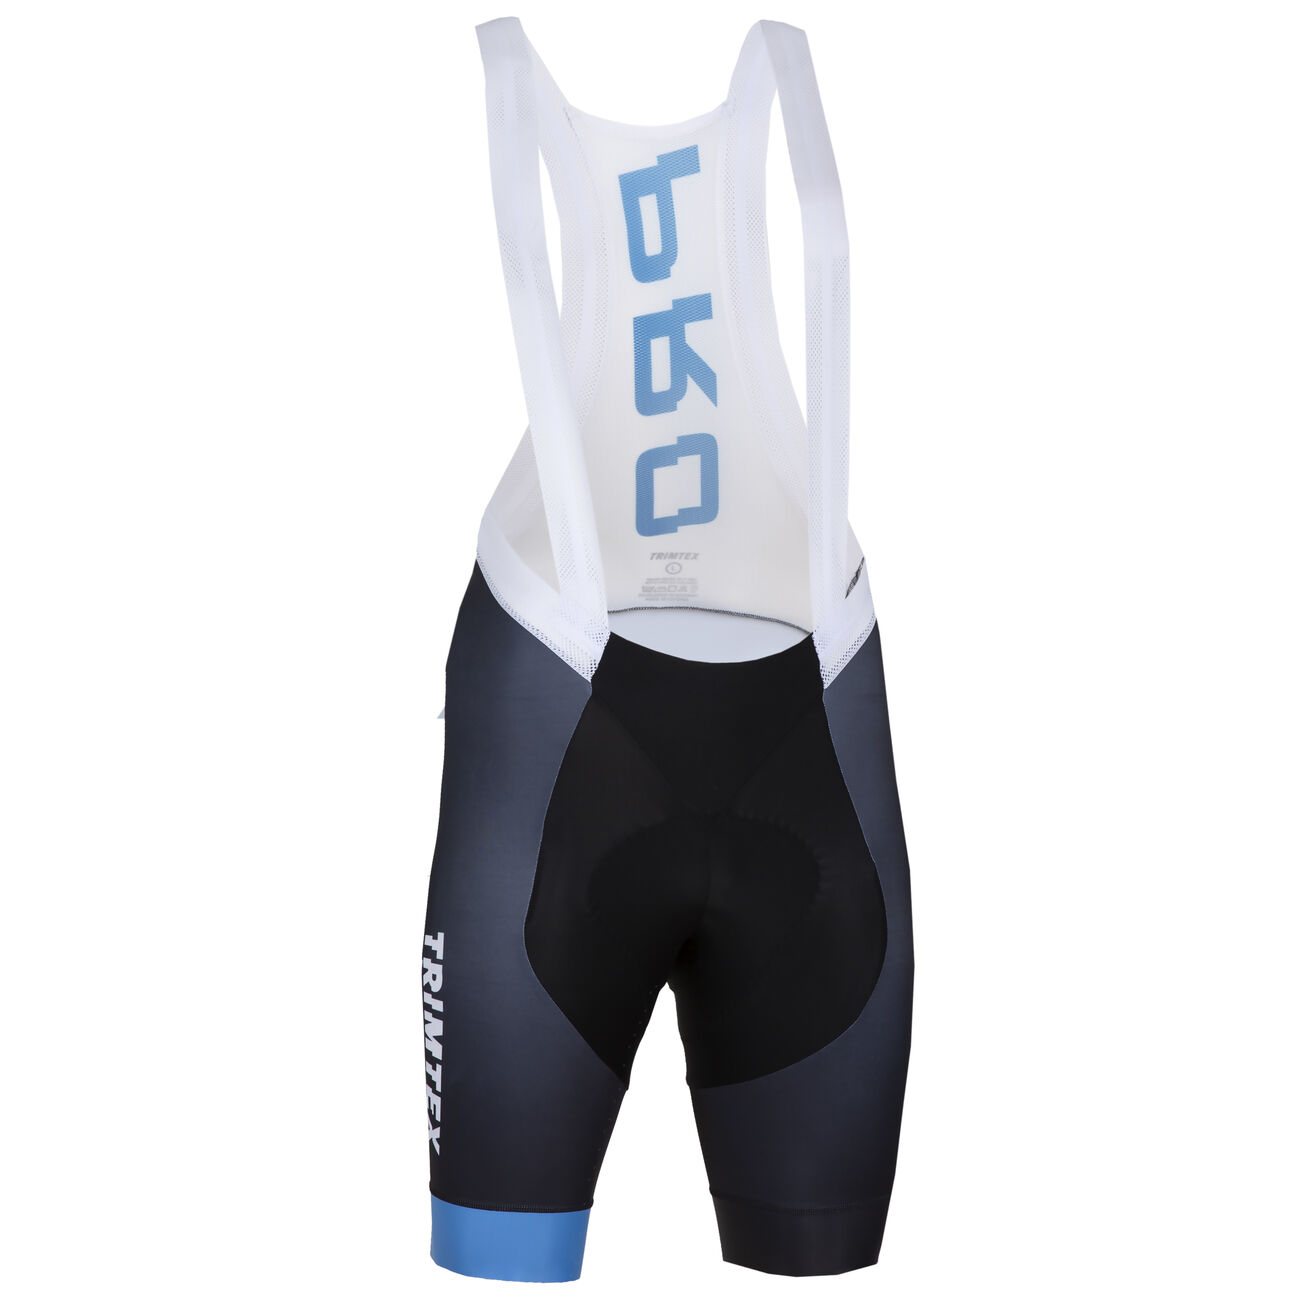 Pro cycling bib shorts men's